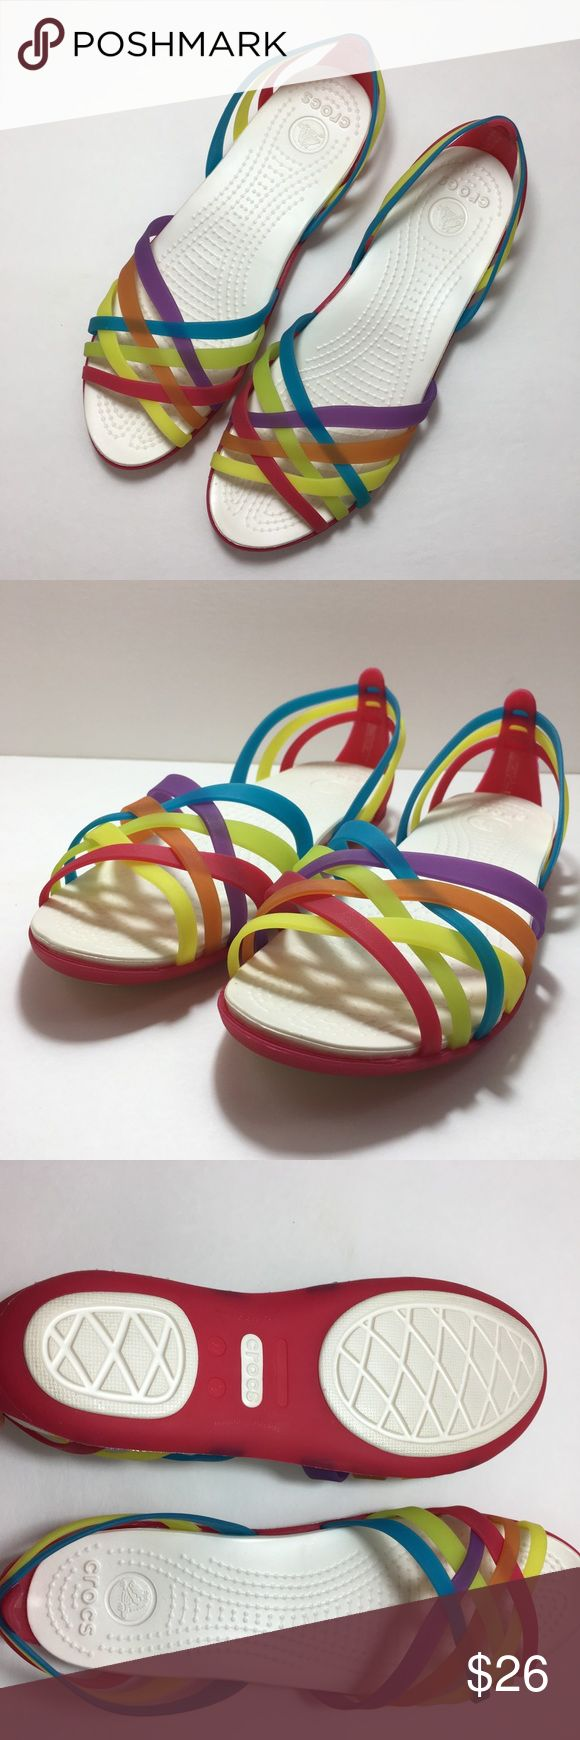 Crocs Huarache Flats Rainbow jelly sandals from Crocs. Size 9. New without tags - only tried on :) CROCS Shoes Sandals